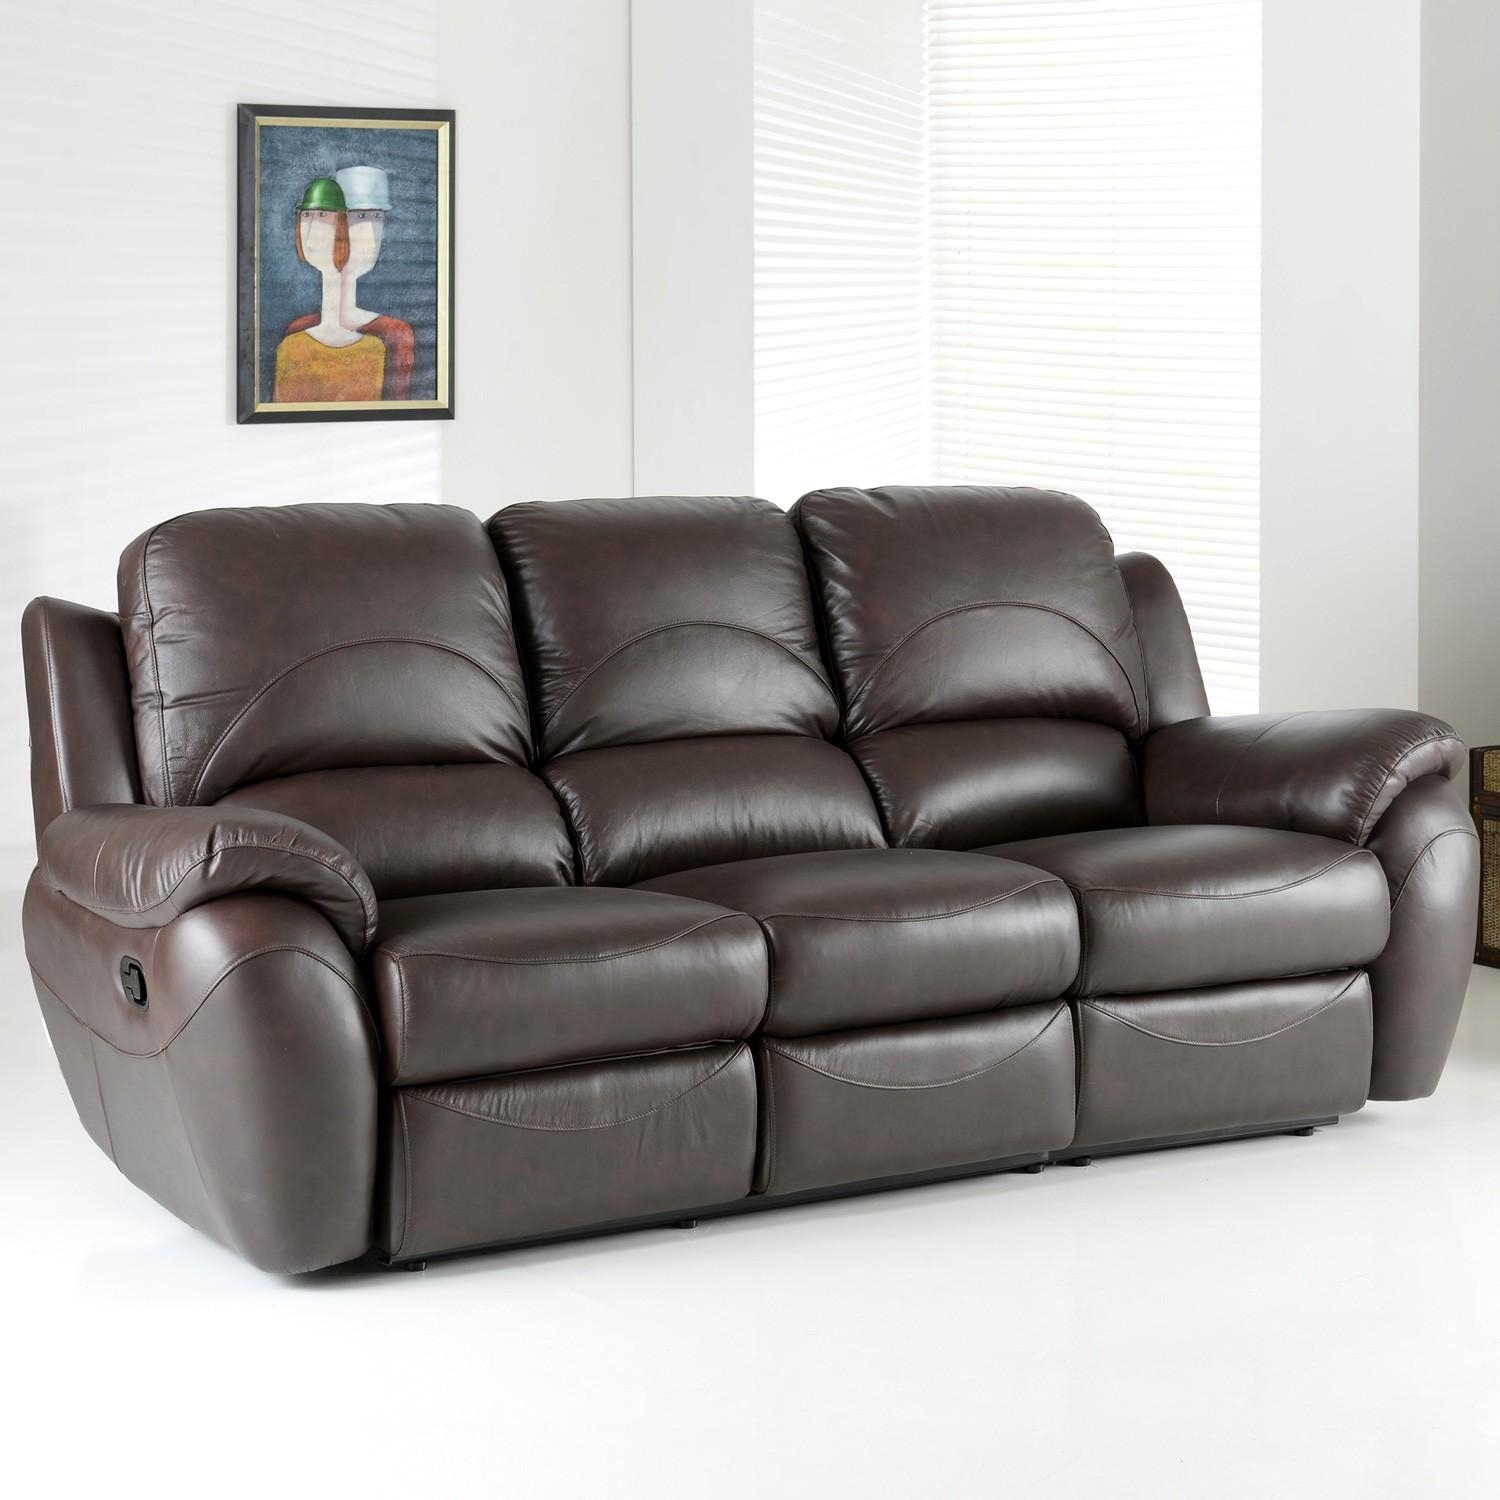 Lazy Boy Leather Sofa Recliners – Leather Sectional Sofa Throughout Lazy Boy Leather Sectional (Image 17 of 20)